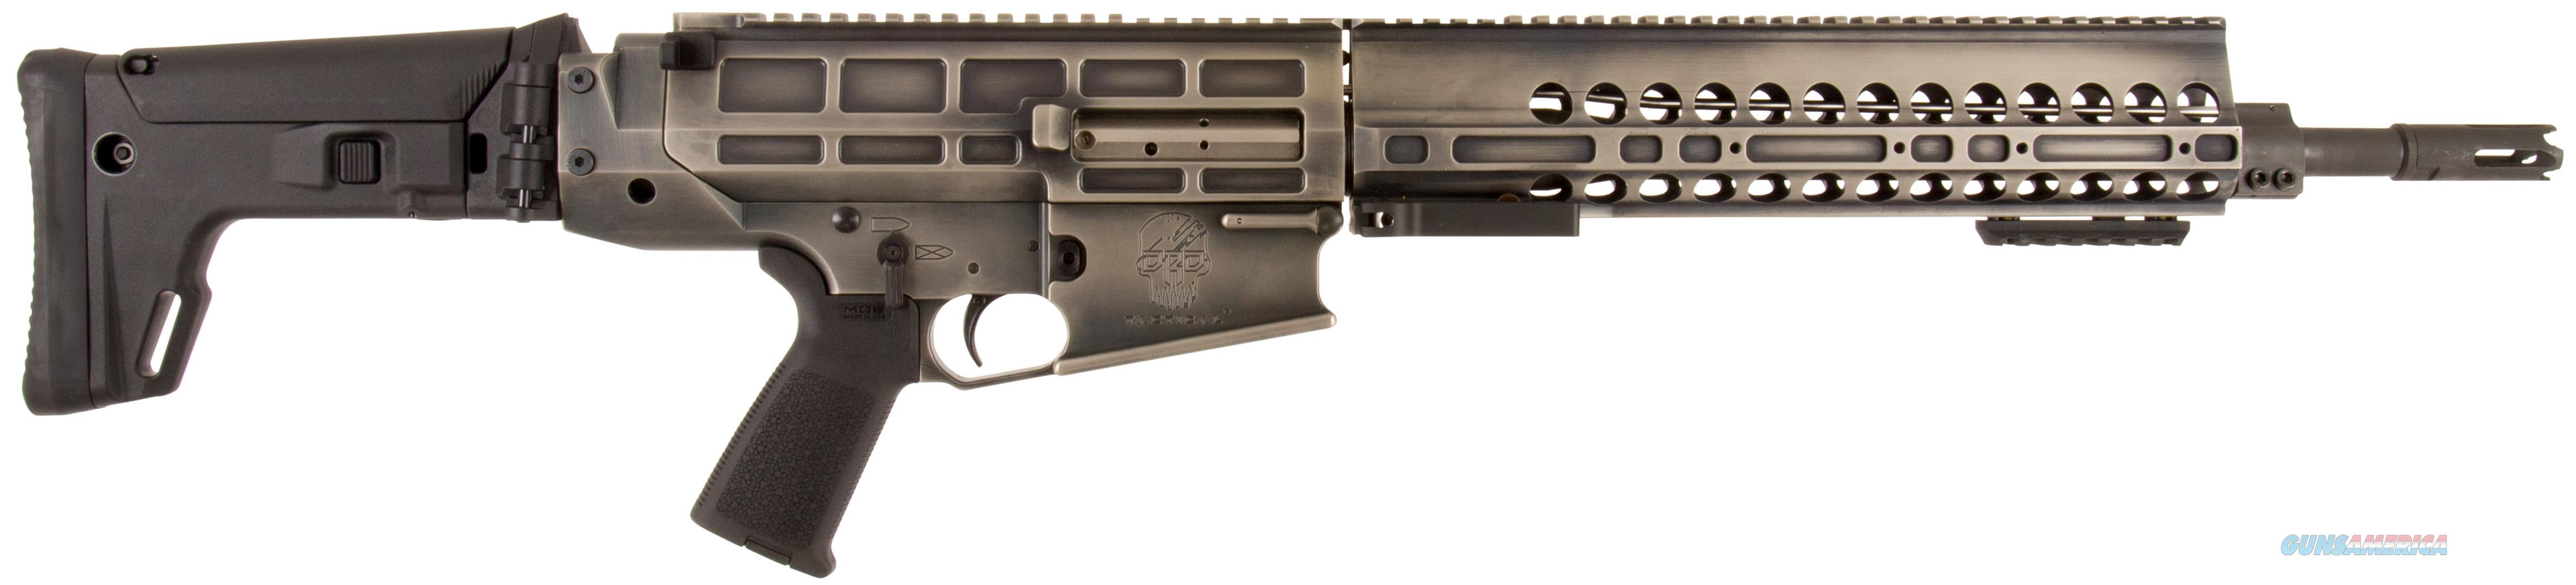 "Drd Tactical Drdp762bw16 Paratus Gen-2 Semi-Automatic 308 Winchester/7.62 Nato 16"" 20+1 Adjustable Black Stock Black Hard Coat Anodized DRDP762BW16  Guns > Rifles > D Misc Rifles"